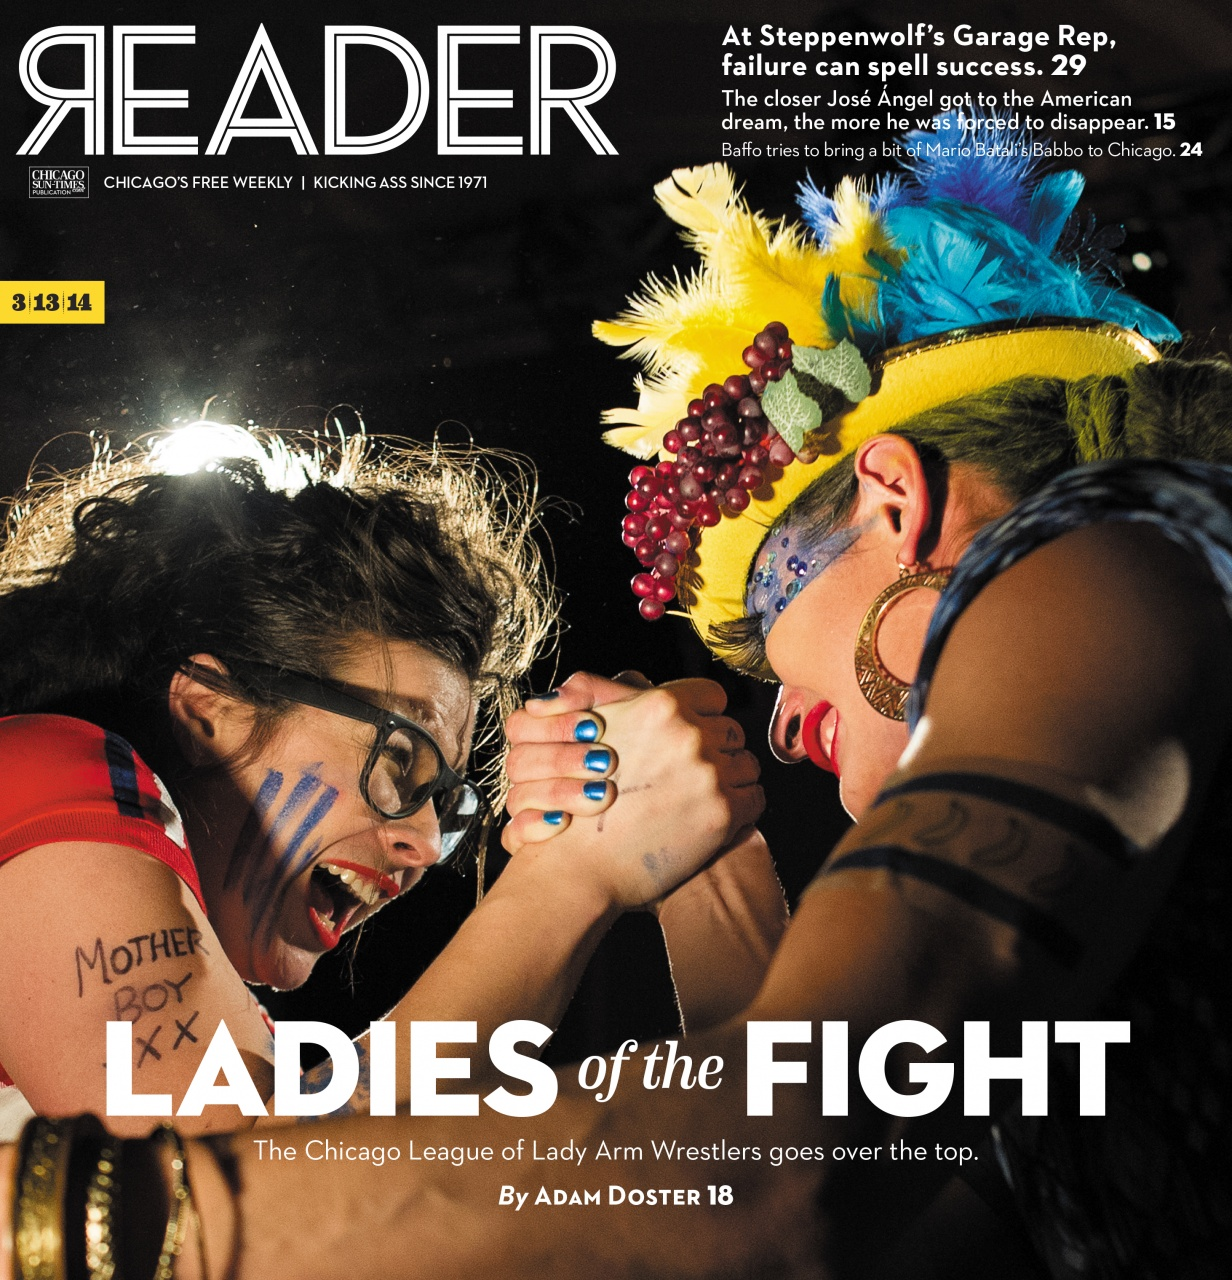 Chicago Reader - League of Lady Arm Wrestlers